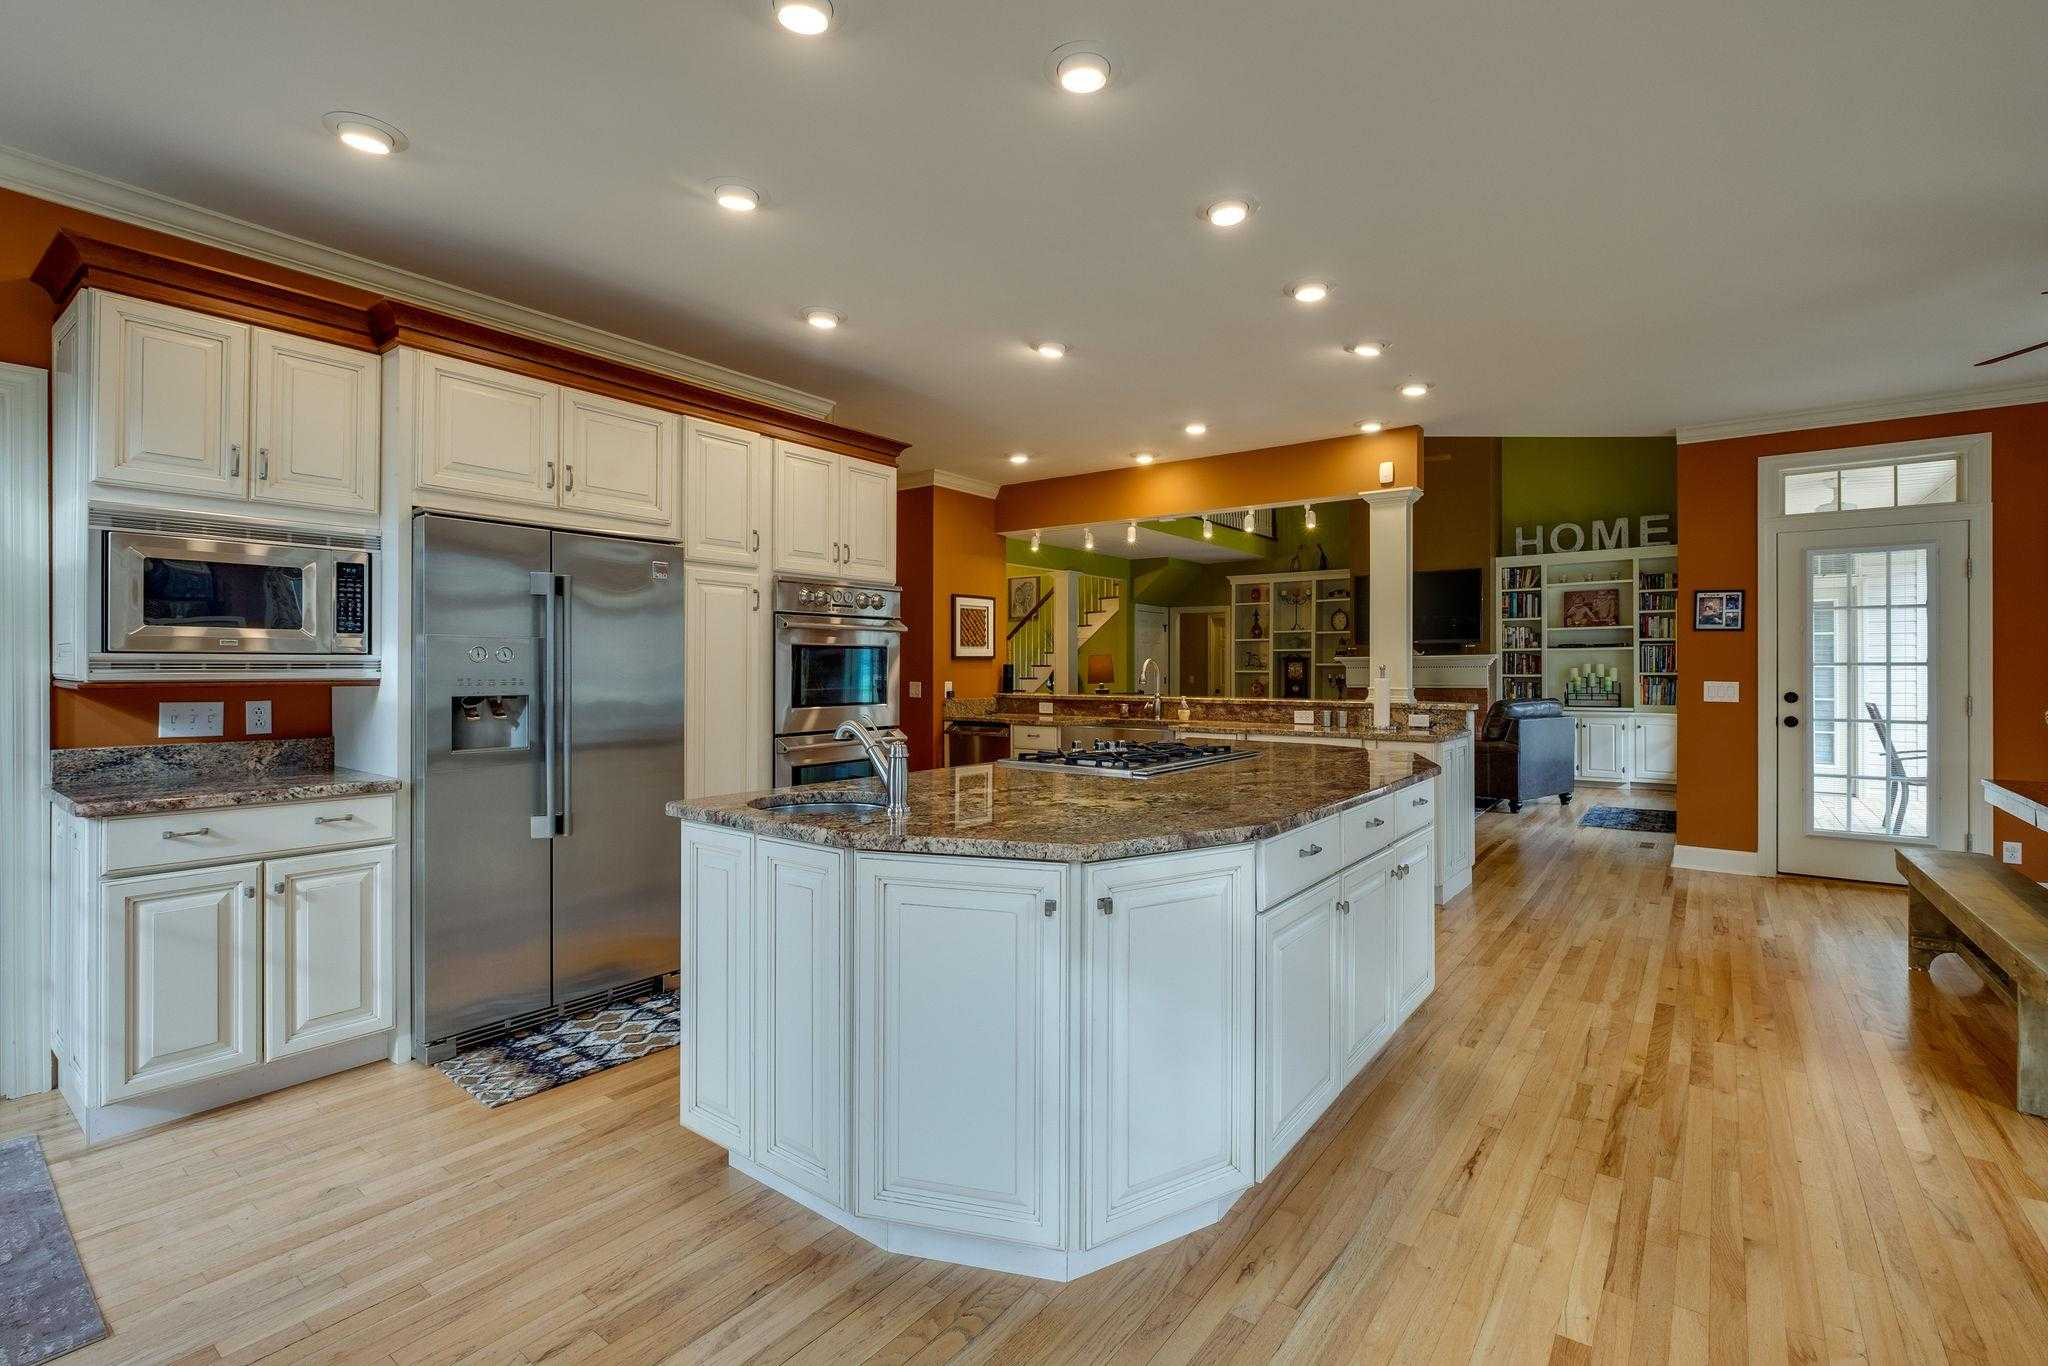 $689,000 - 4Br/4Ba -  for Sale in None, Mount Juliet